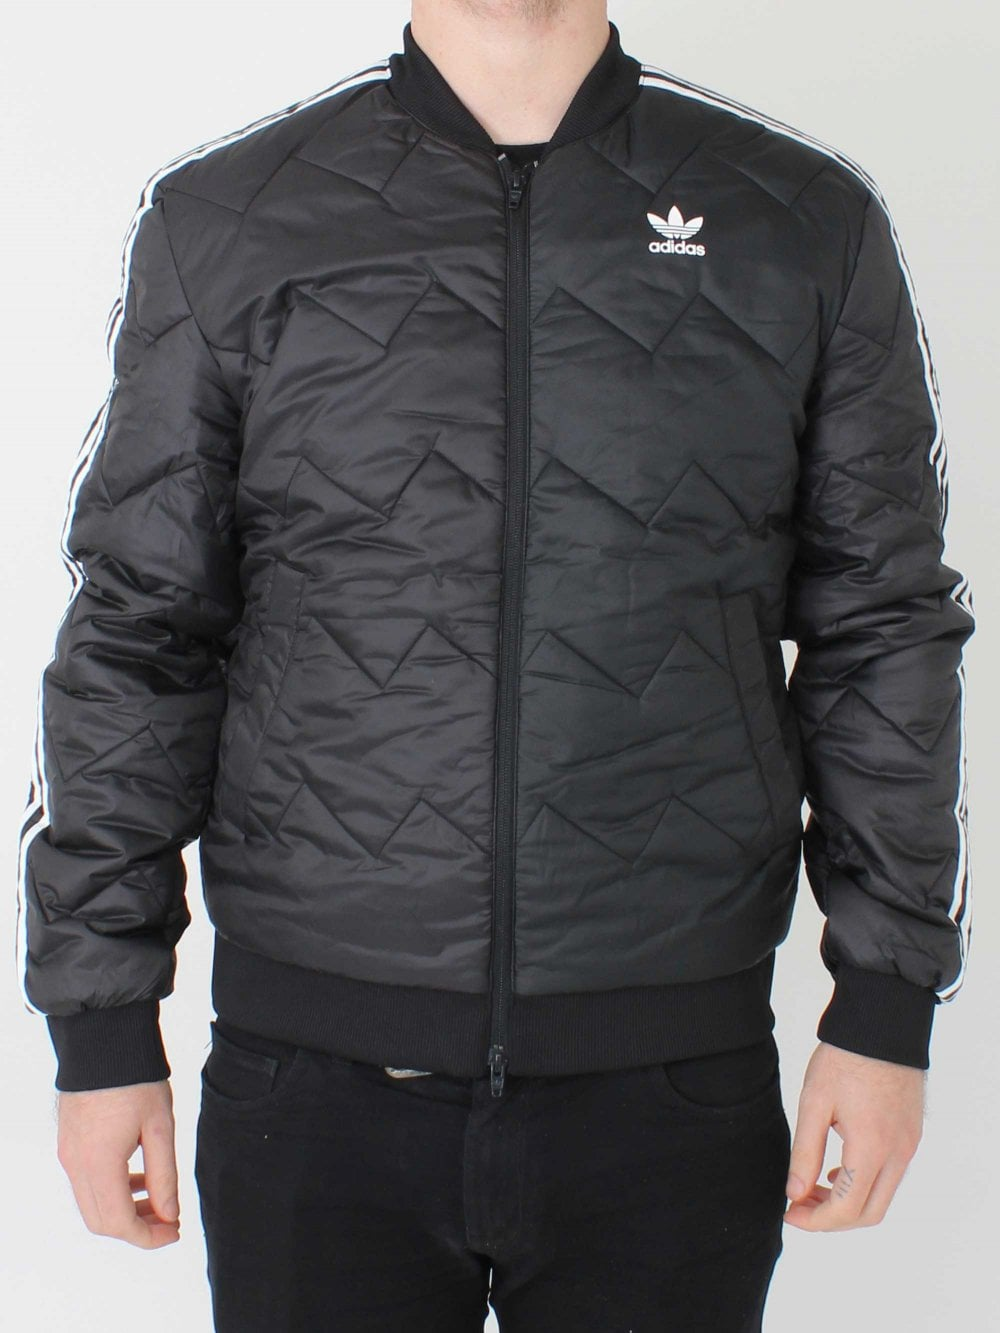 232e5f10e0 adidas Originals SST Quilted Jacket in Black | Northern Threads